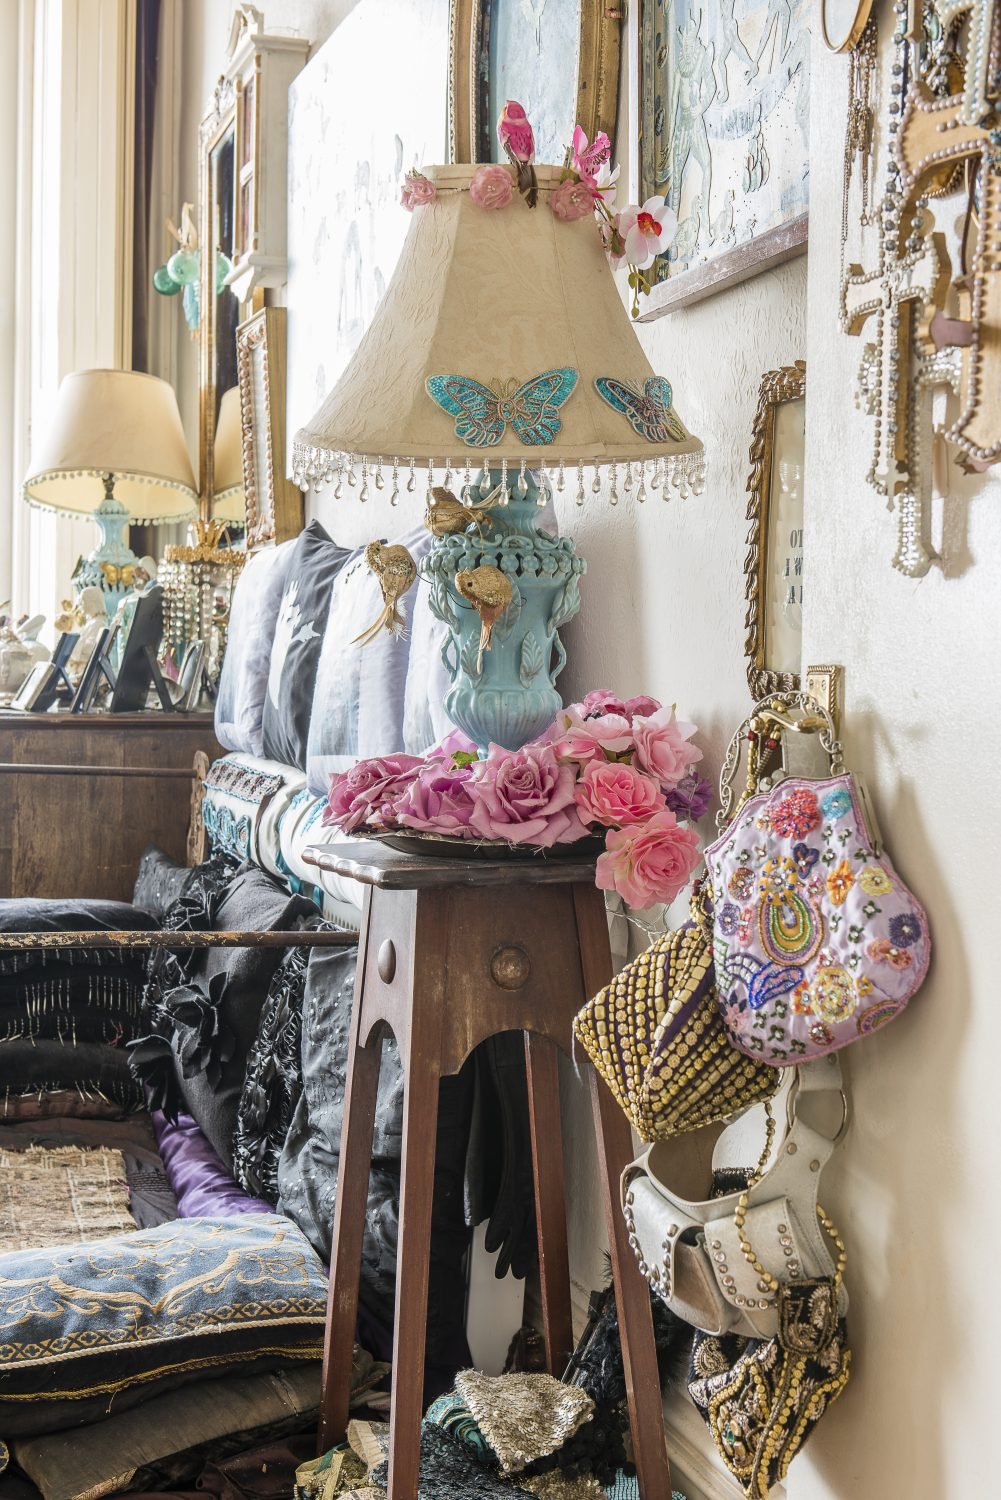 Sassy saves space by displaying beautiful items which are usually stowed away; bags are hung on door handles and jewellery is set out on a Georgian writing desk